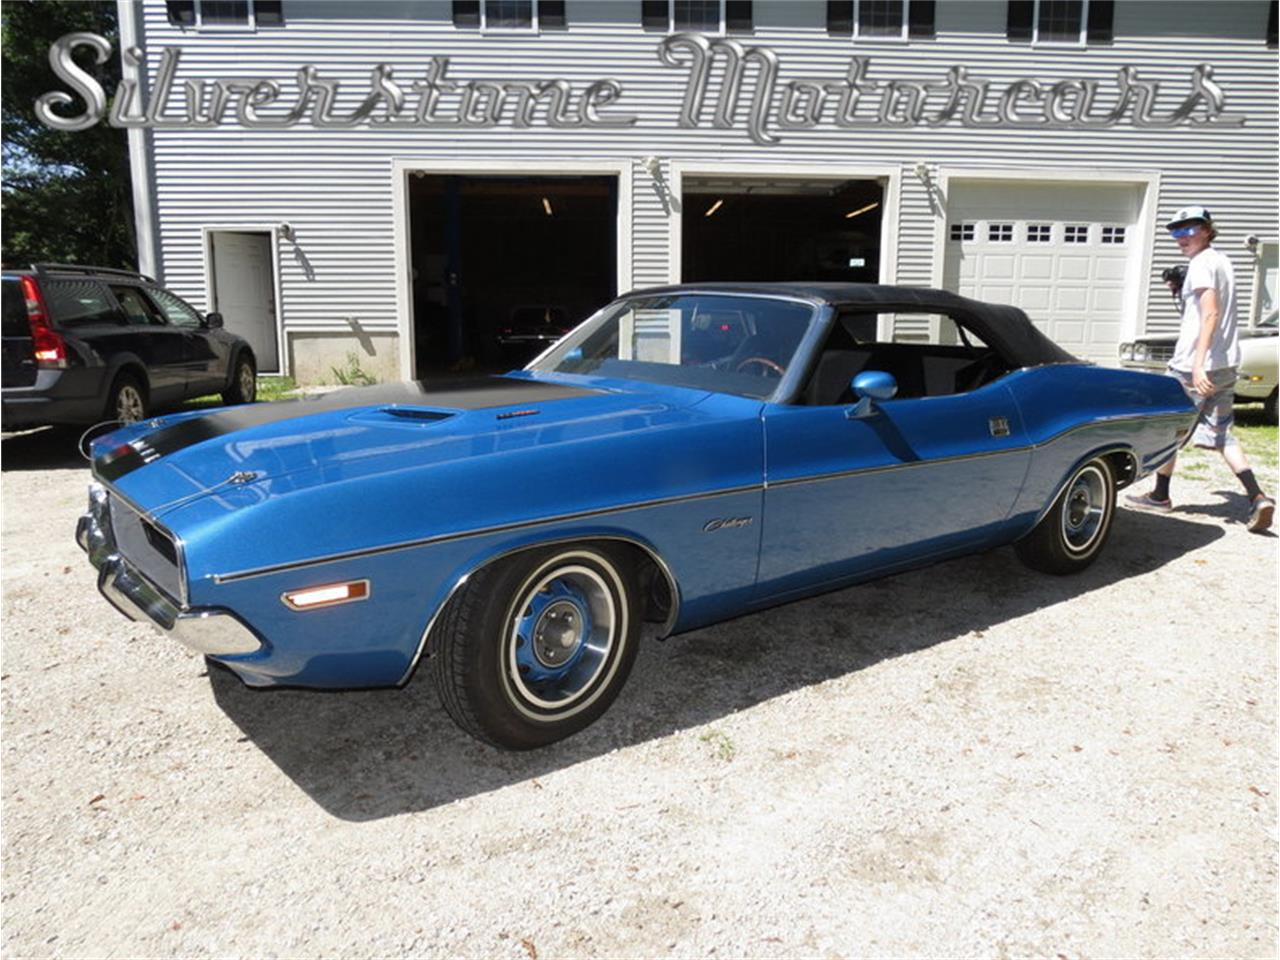 Large Picture of Classic '71 Challenger located in Massachusetts - $45,900.00 - J0QS